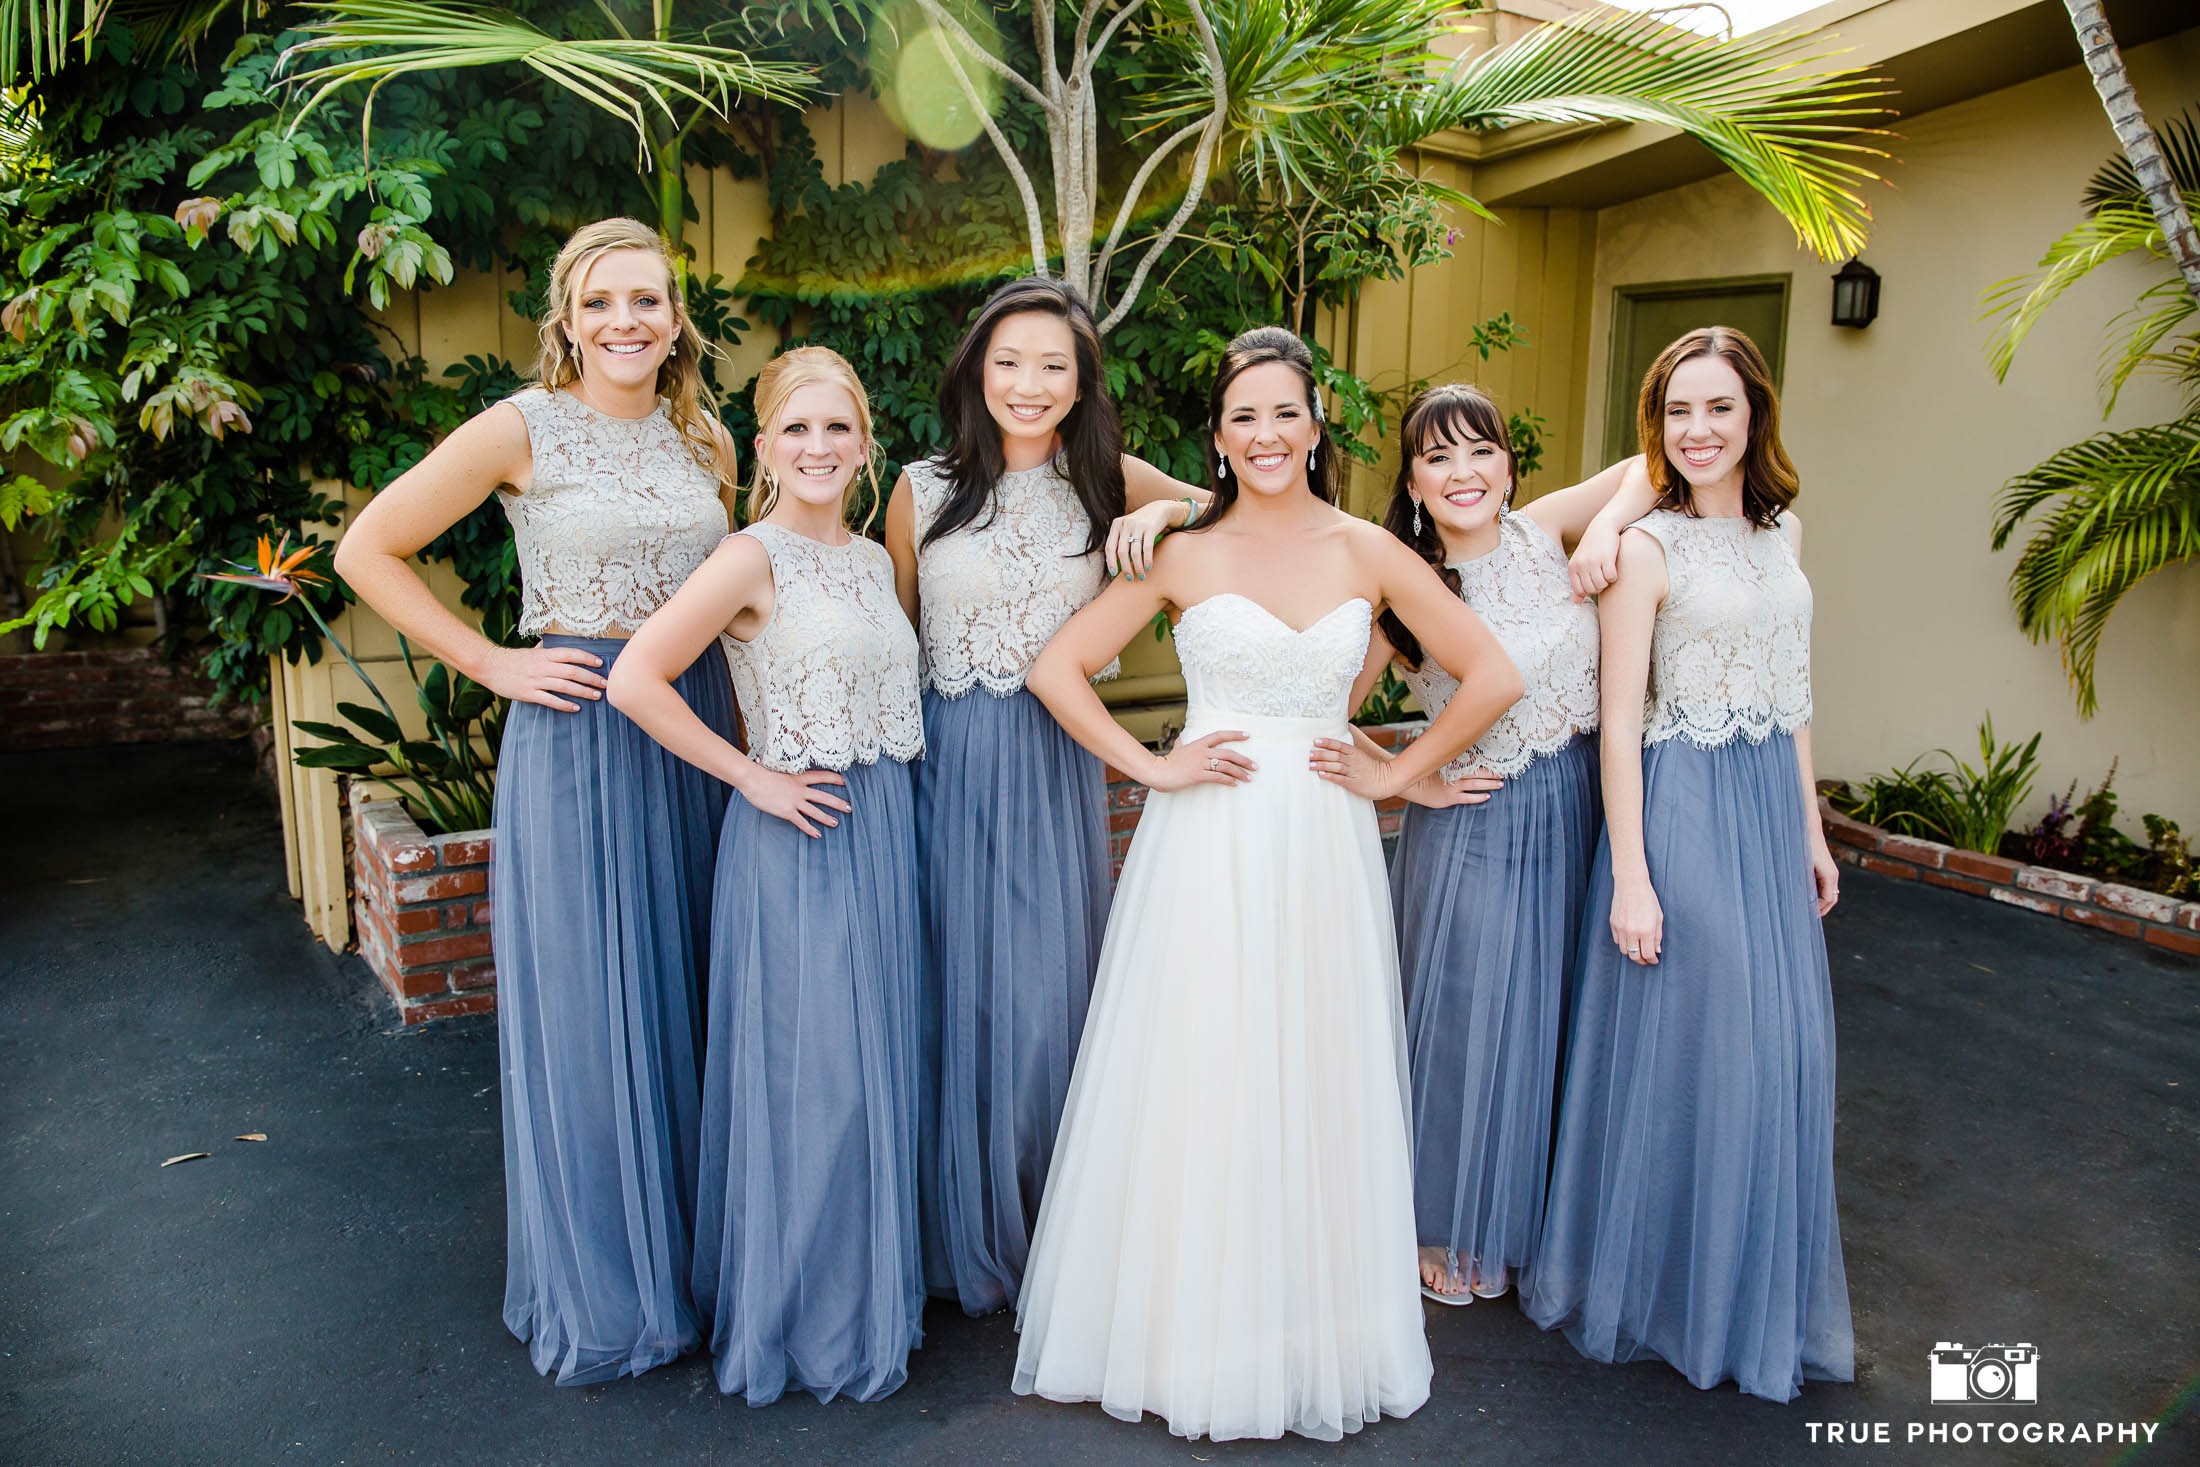 Bridesmaids laugh and smile